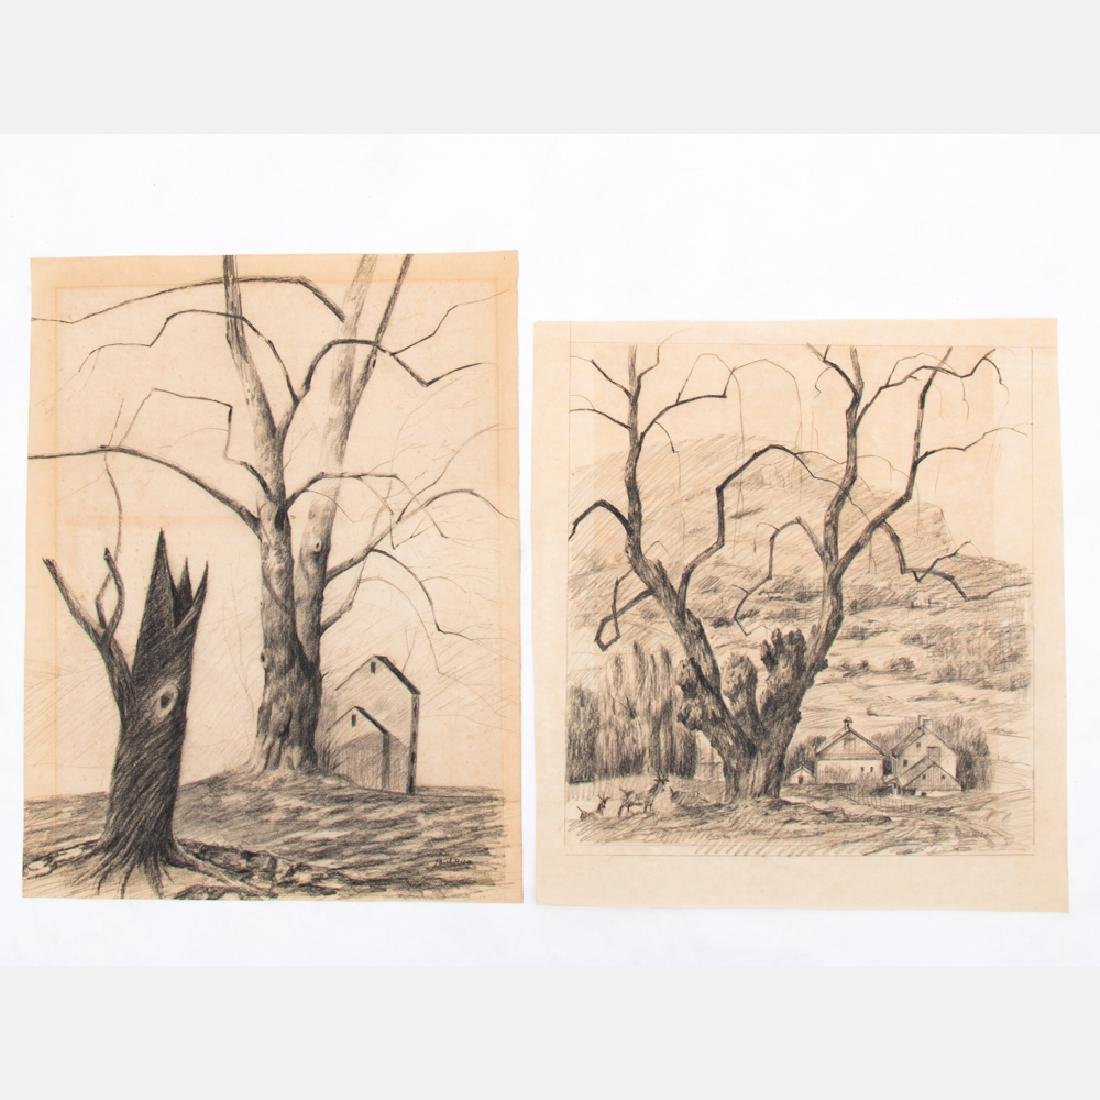 Paul Riba (1912-1977) Two Landscape Studies, Pencil on